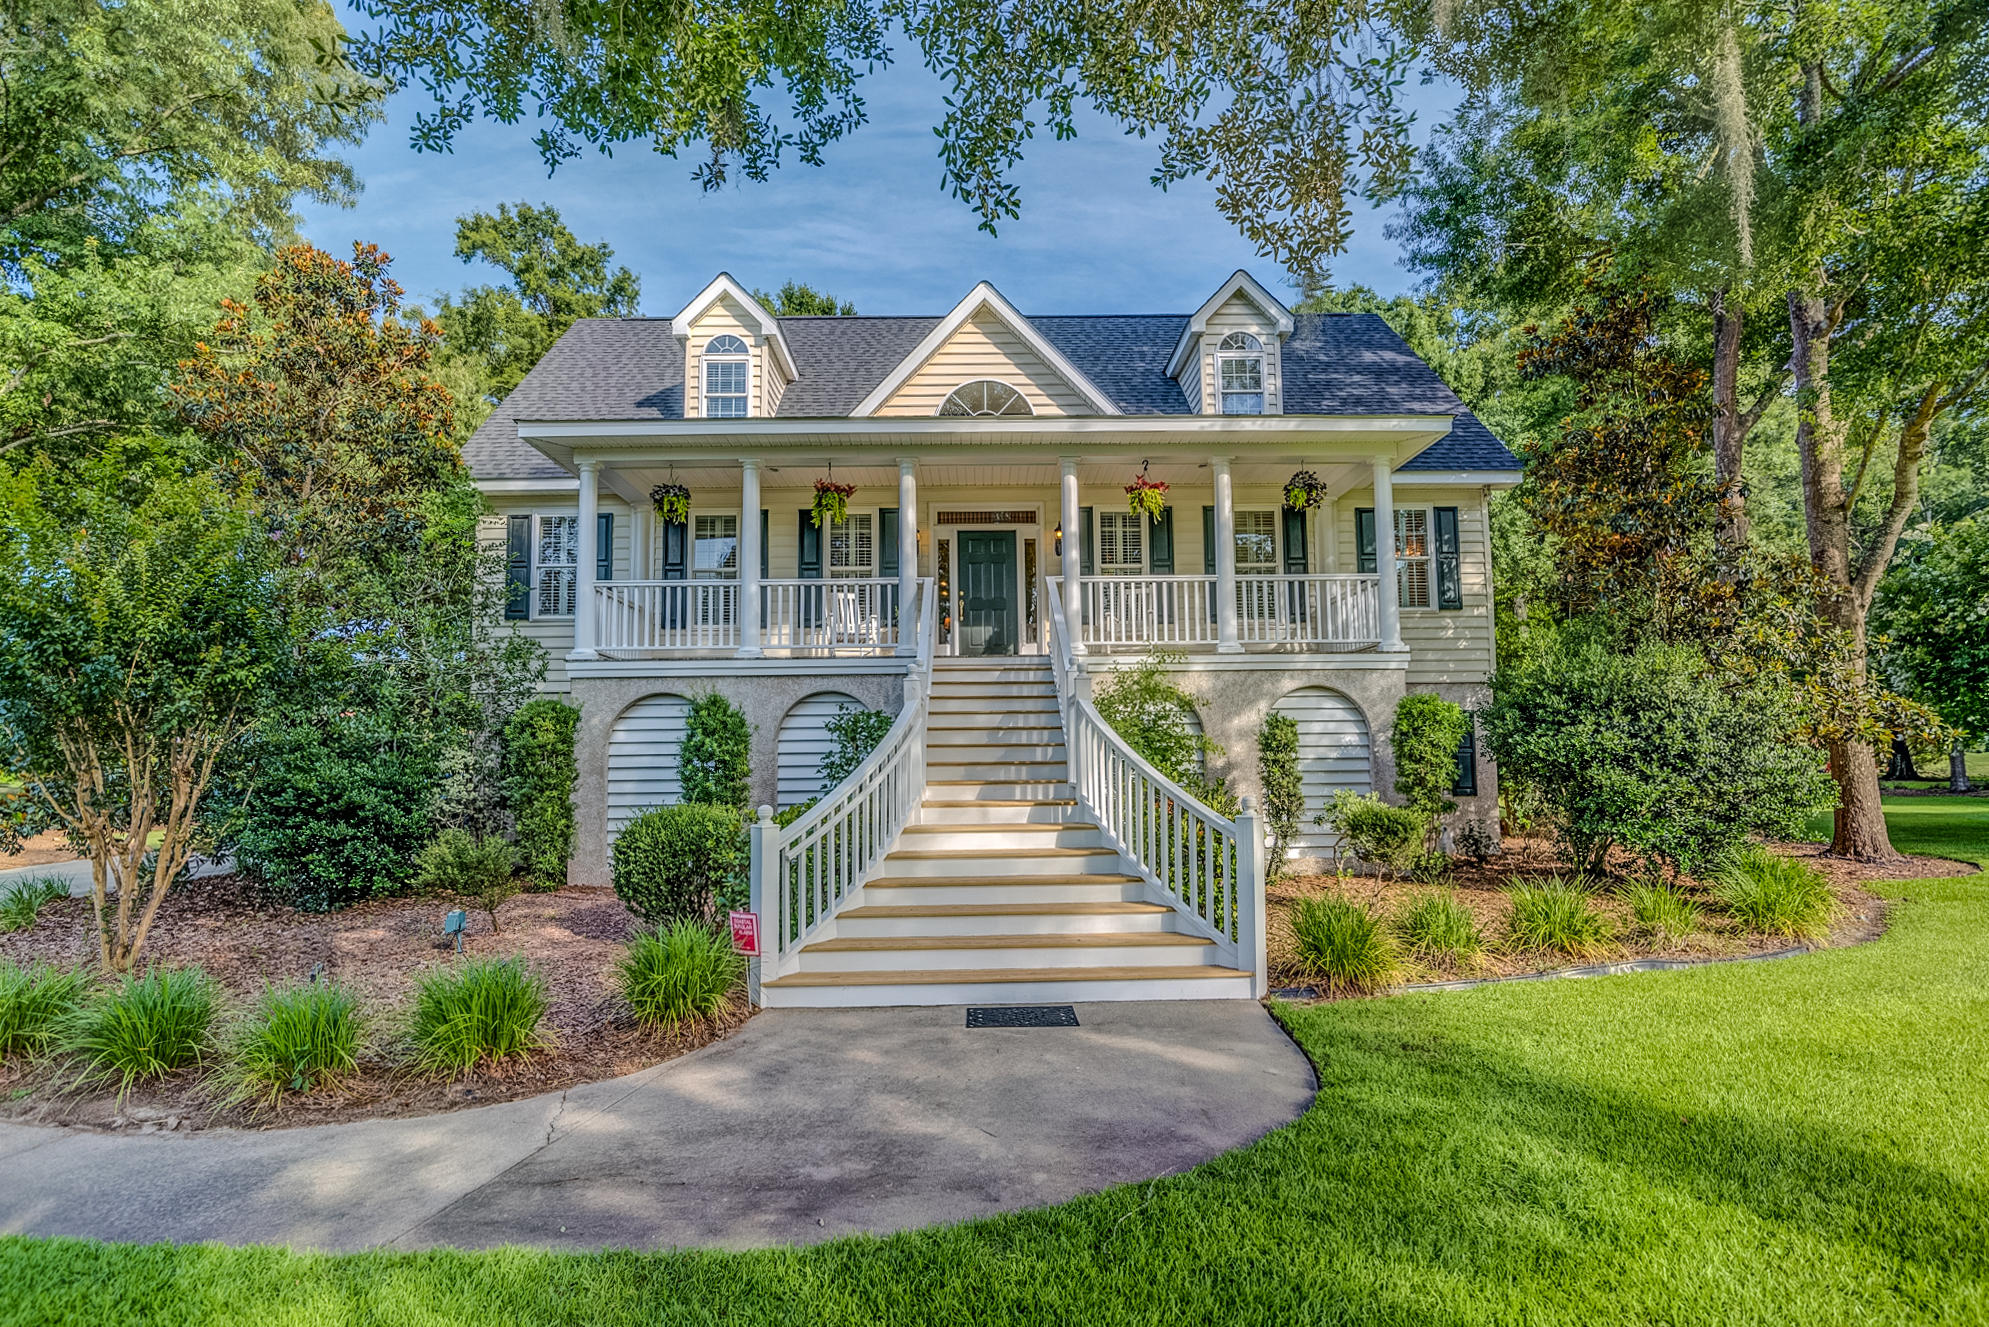 Photo of 47 Ripplemoor Ln, Charleston, SC 29414